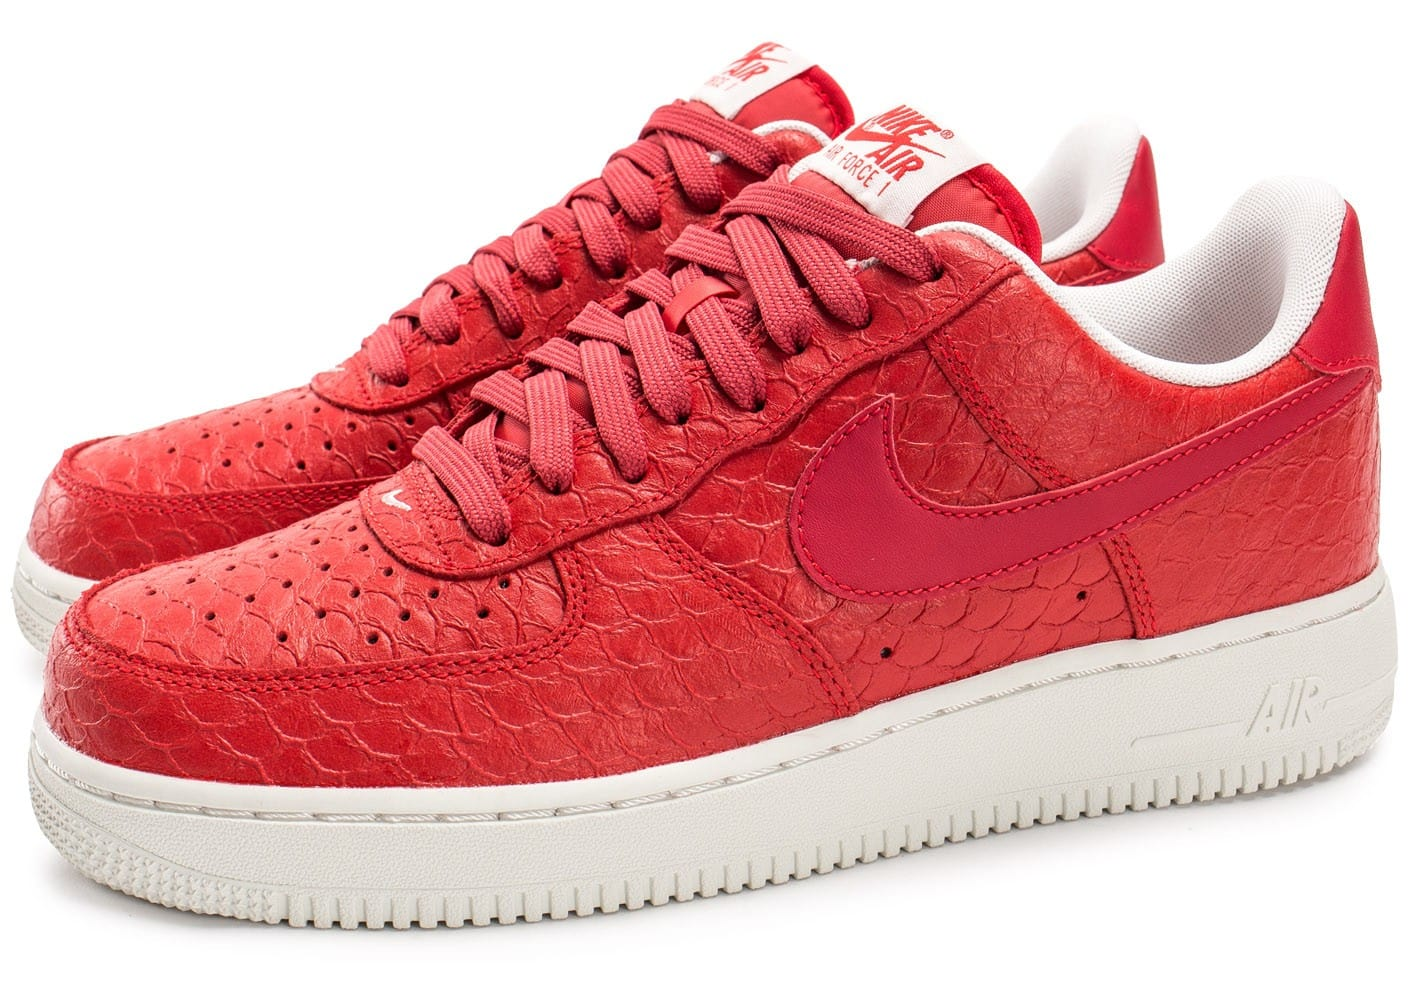 nouveaux styles 345ff af5fa nike air force 1 07 rouge